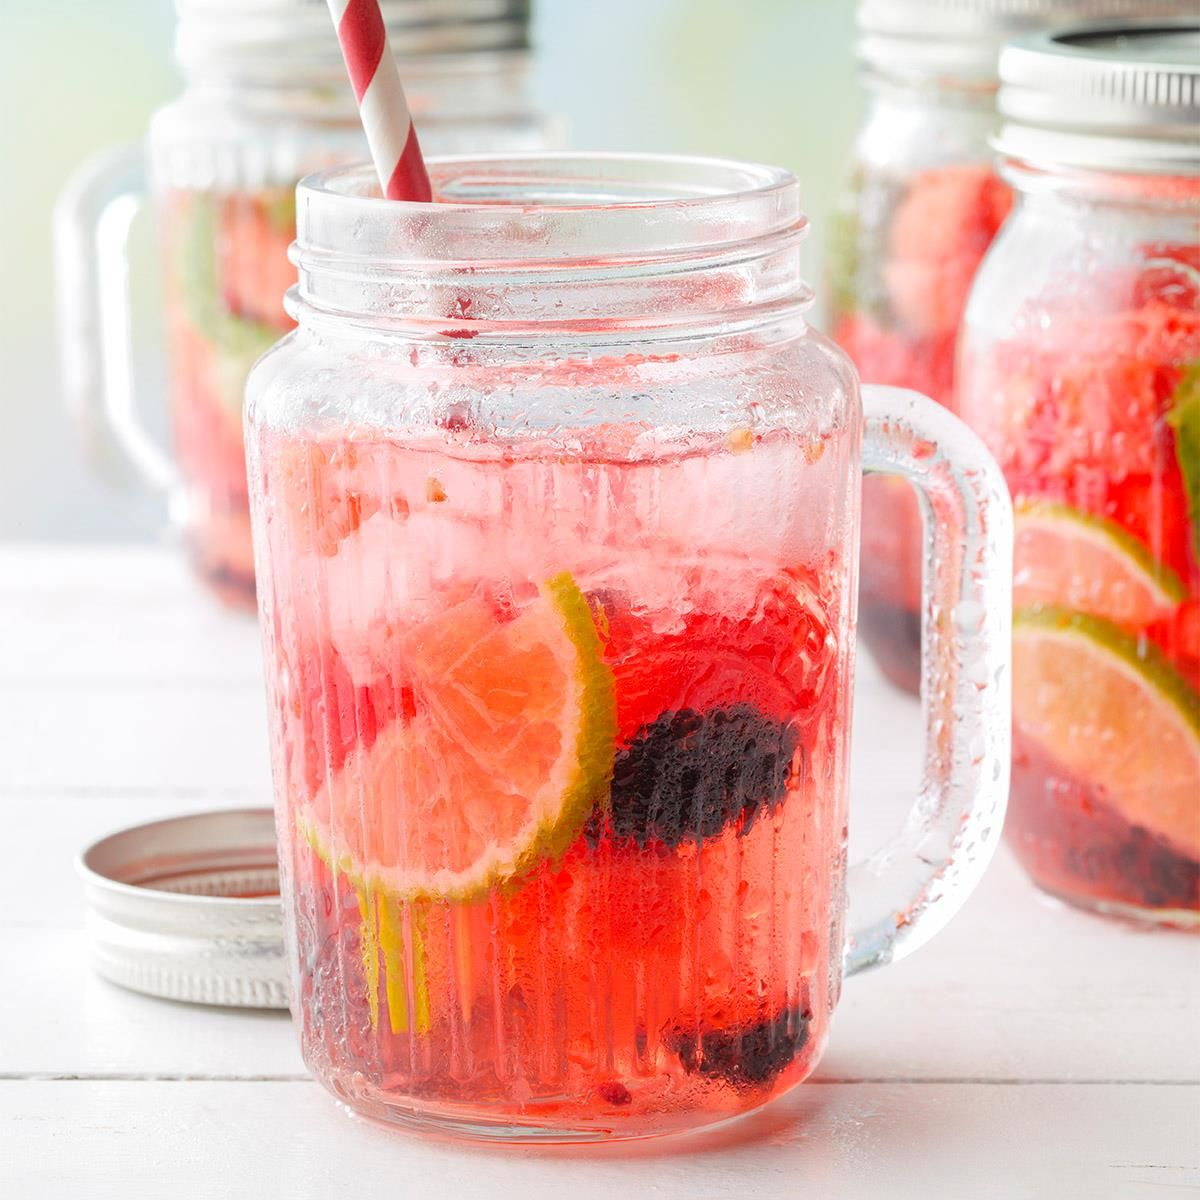 Watermelon And Blackberry Sangria Recipe In 2020 Blackberry Sangria Sangria Recipes Watermelon Sangria